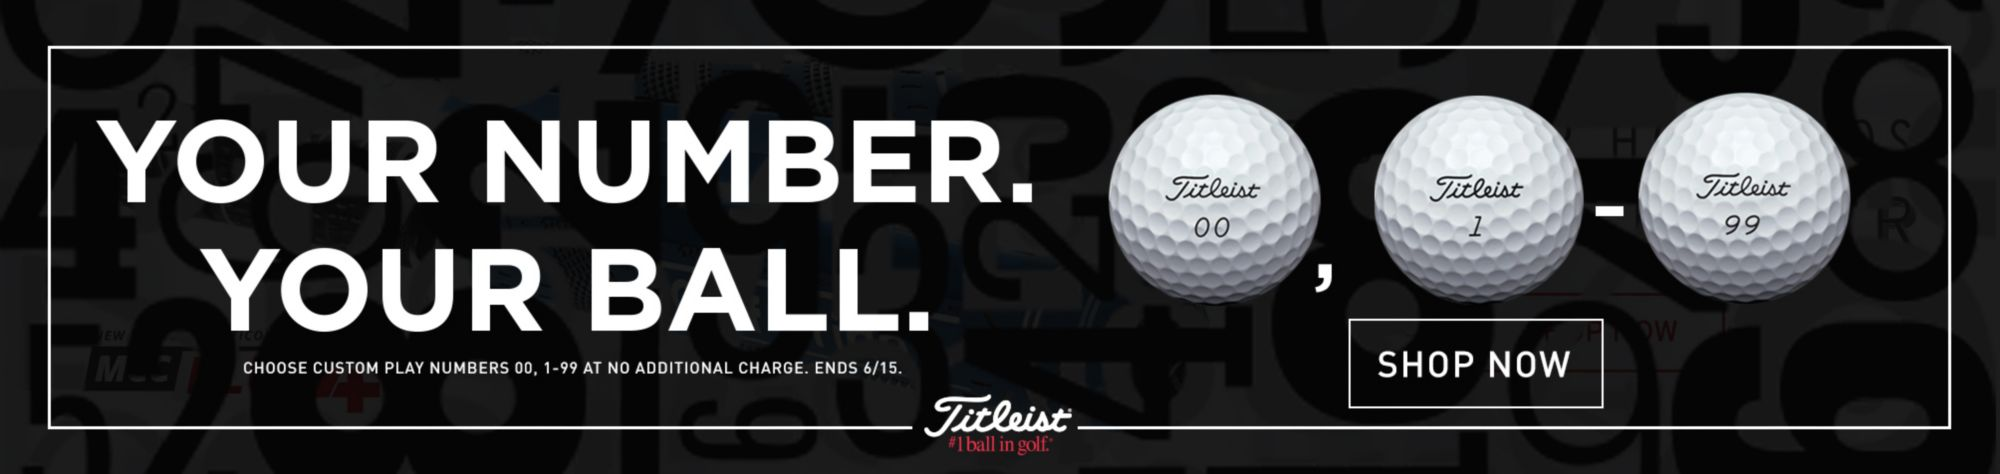 Your Number. Your Ball. Shop Titleist Golf Balls.